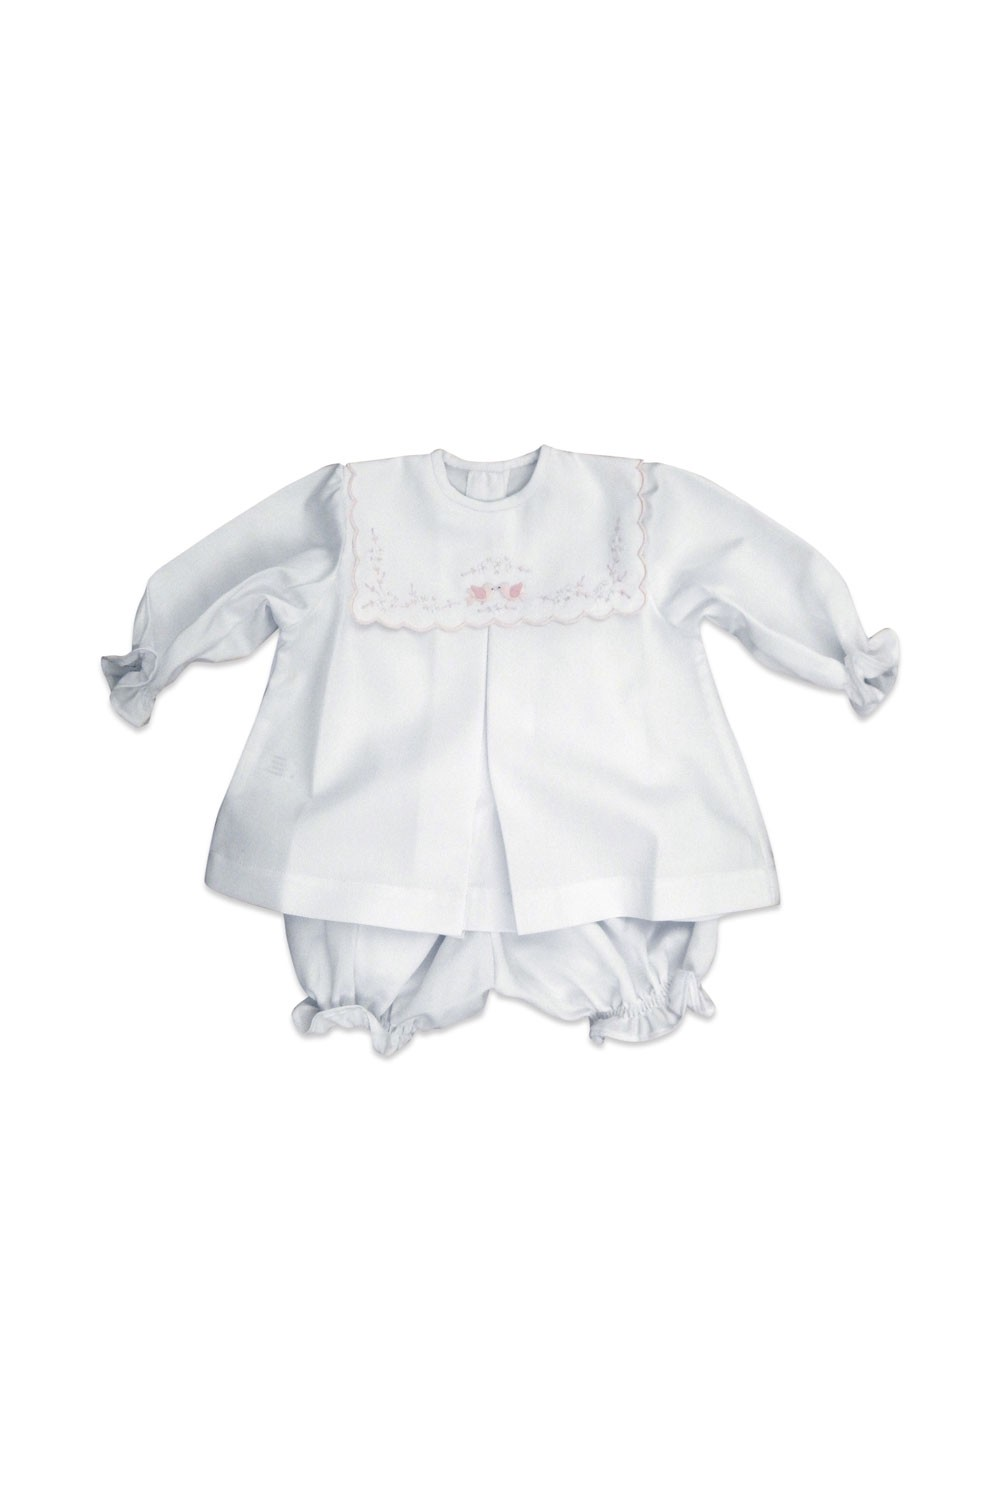 "Baby dress ""Love doves"""